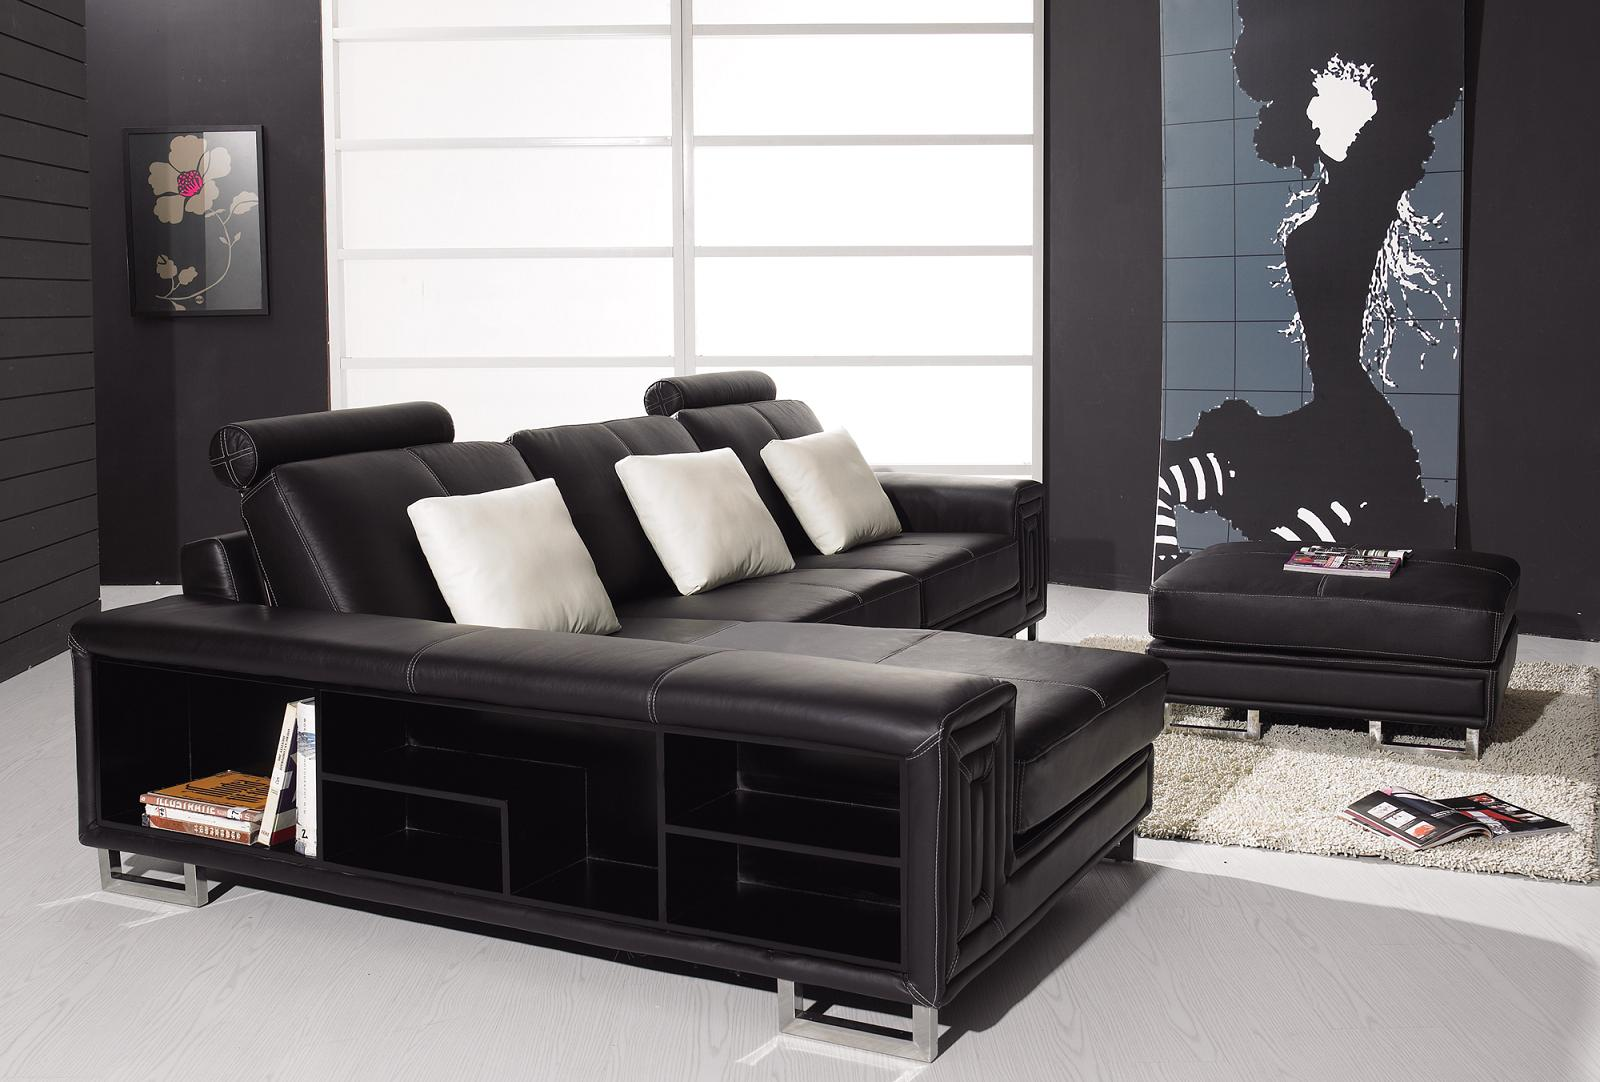 modern black leather sofa espresso square design occasional console table bookshelf the versatility and allure of seating